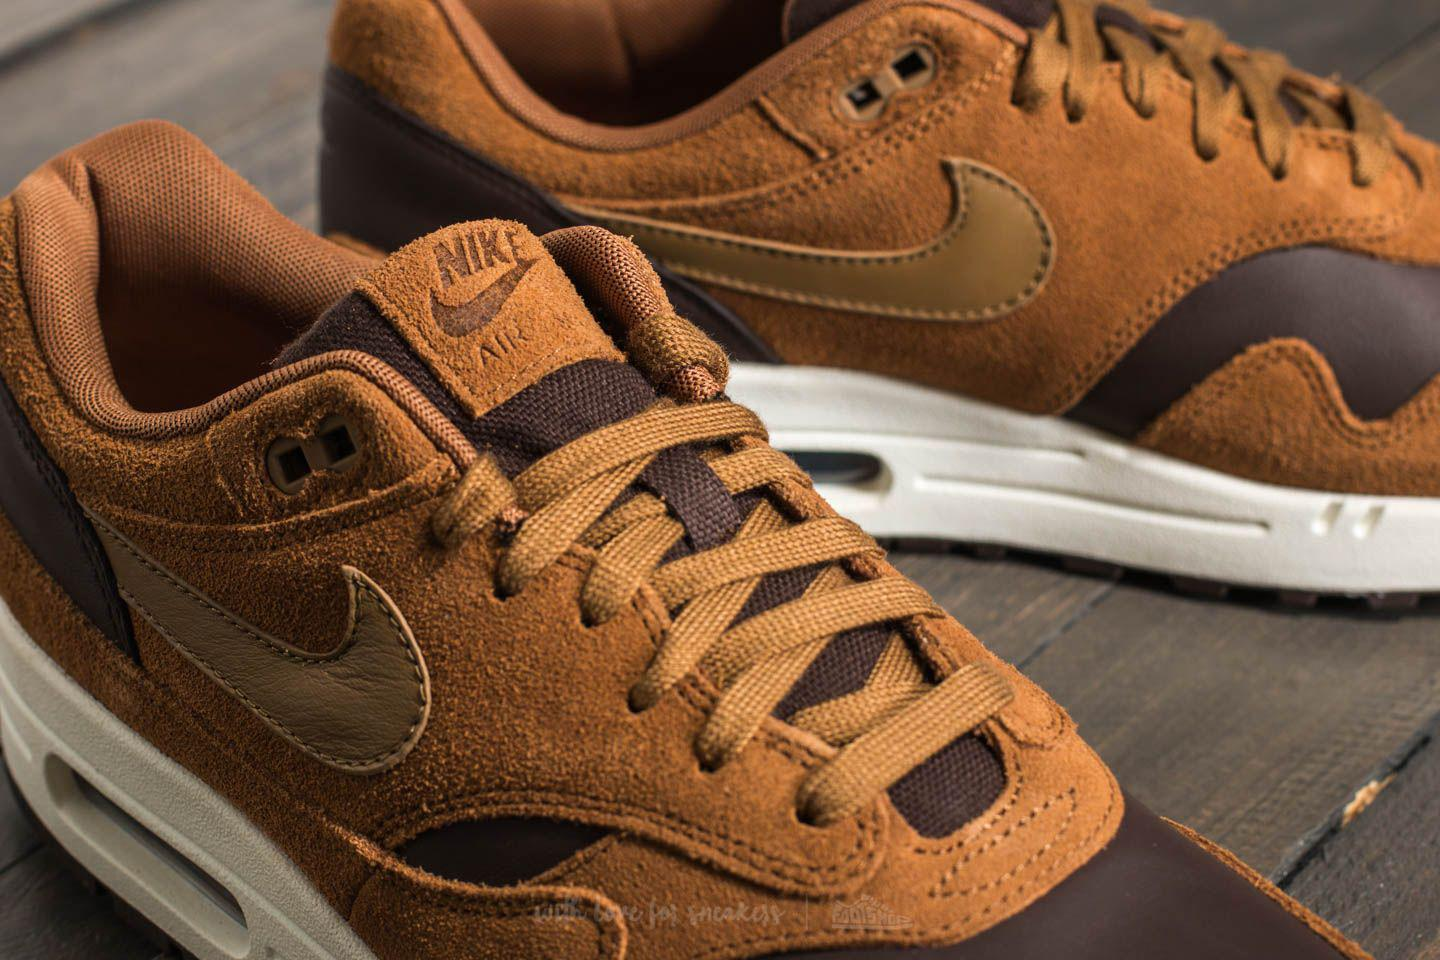 online store d172f 8d9fc Nike Air Max 1 Premium Leather Ale Brown  Golde Beige in Brown for ...